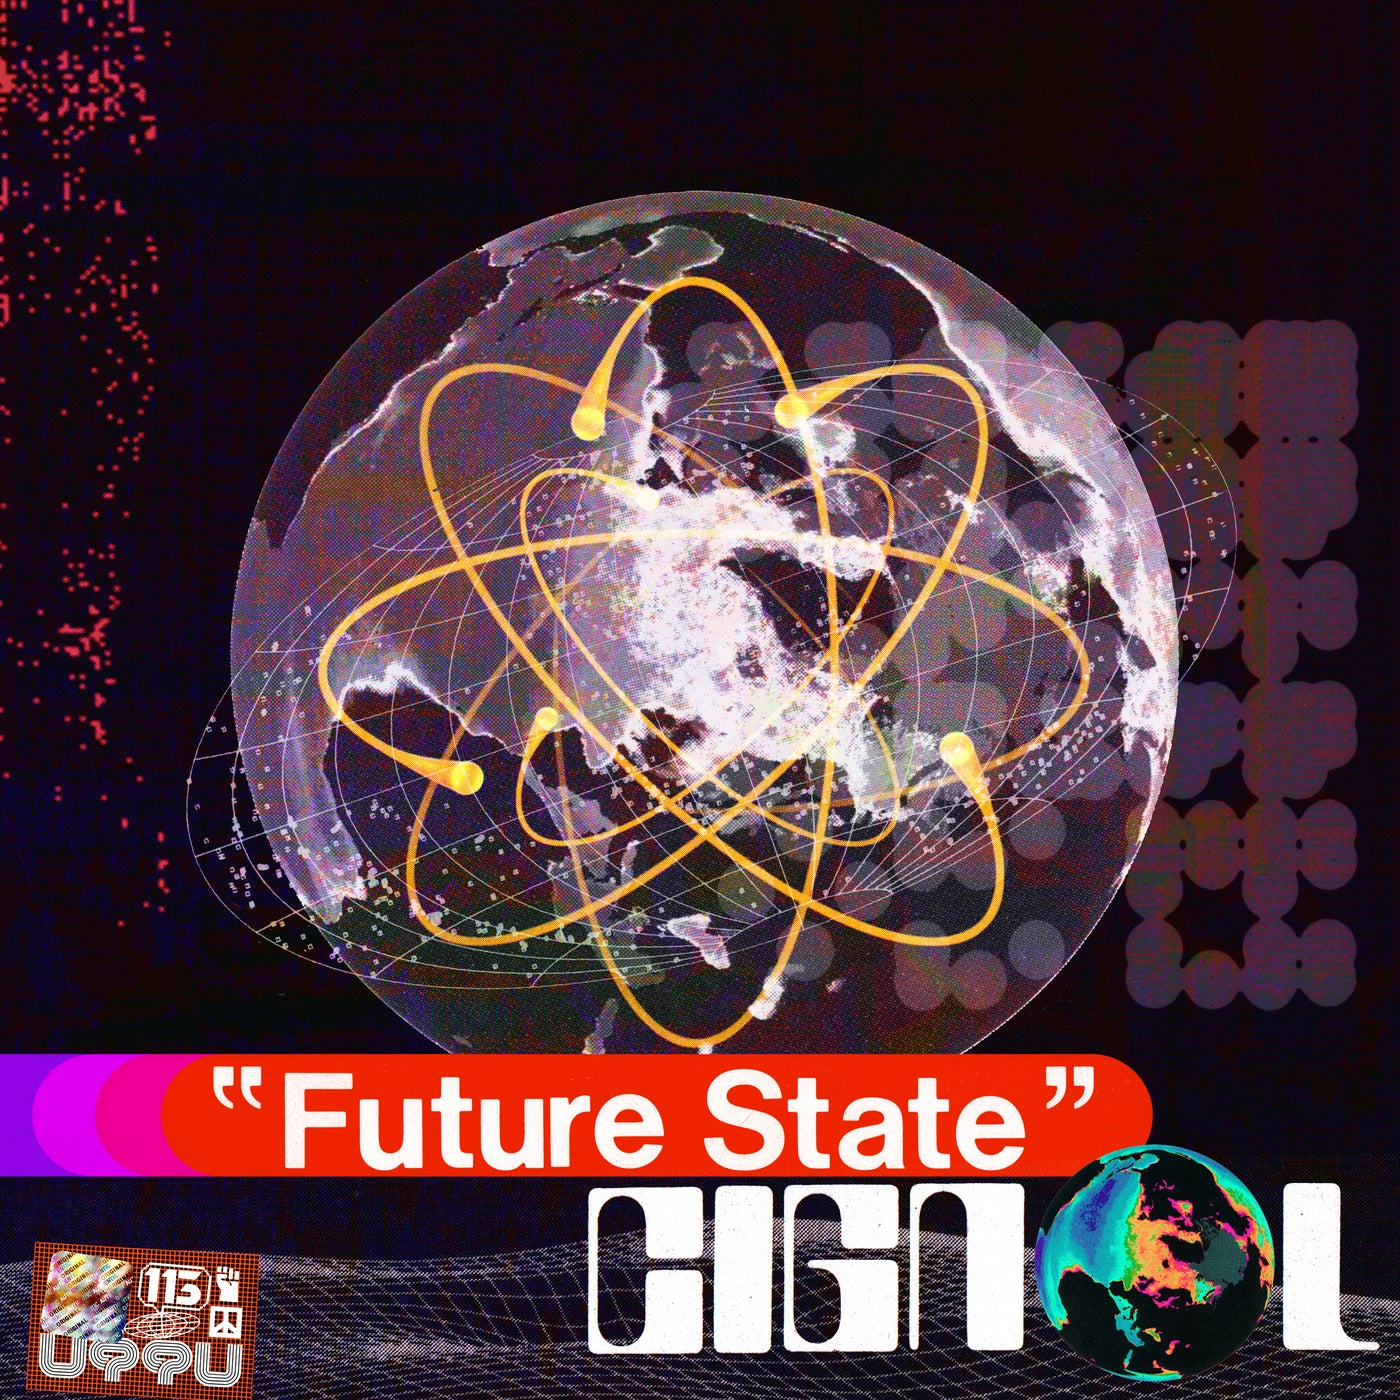 Download Future State EP on Electrobuzz